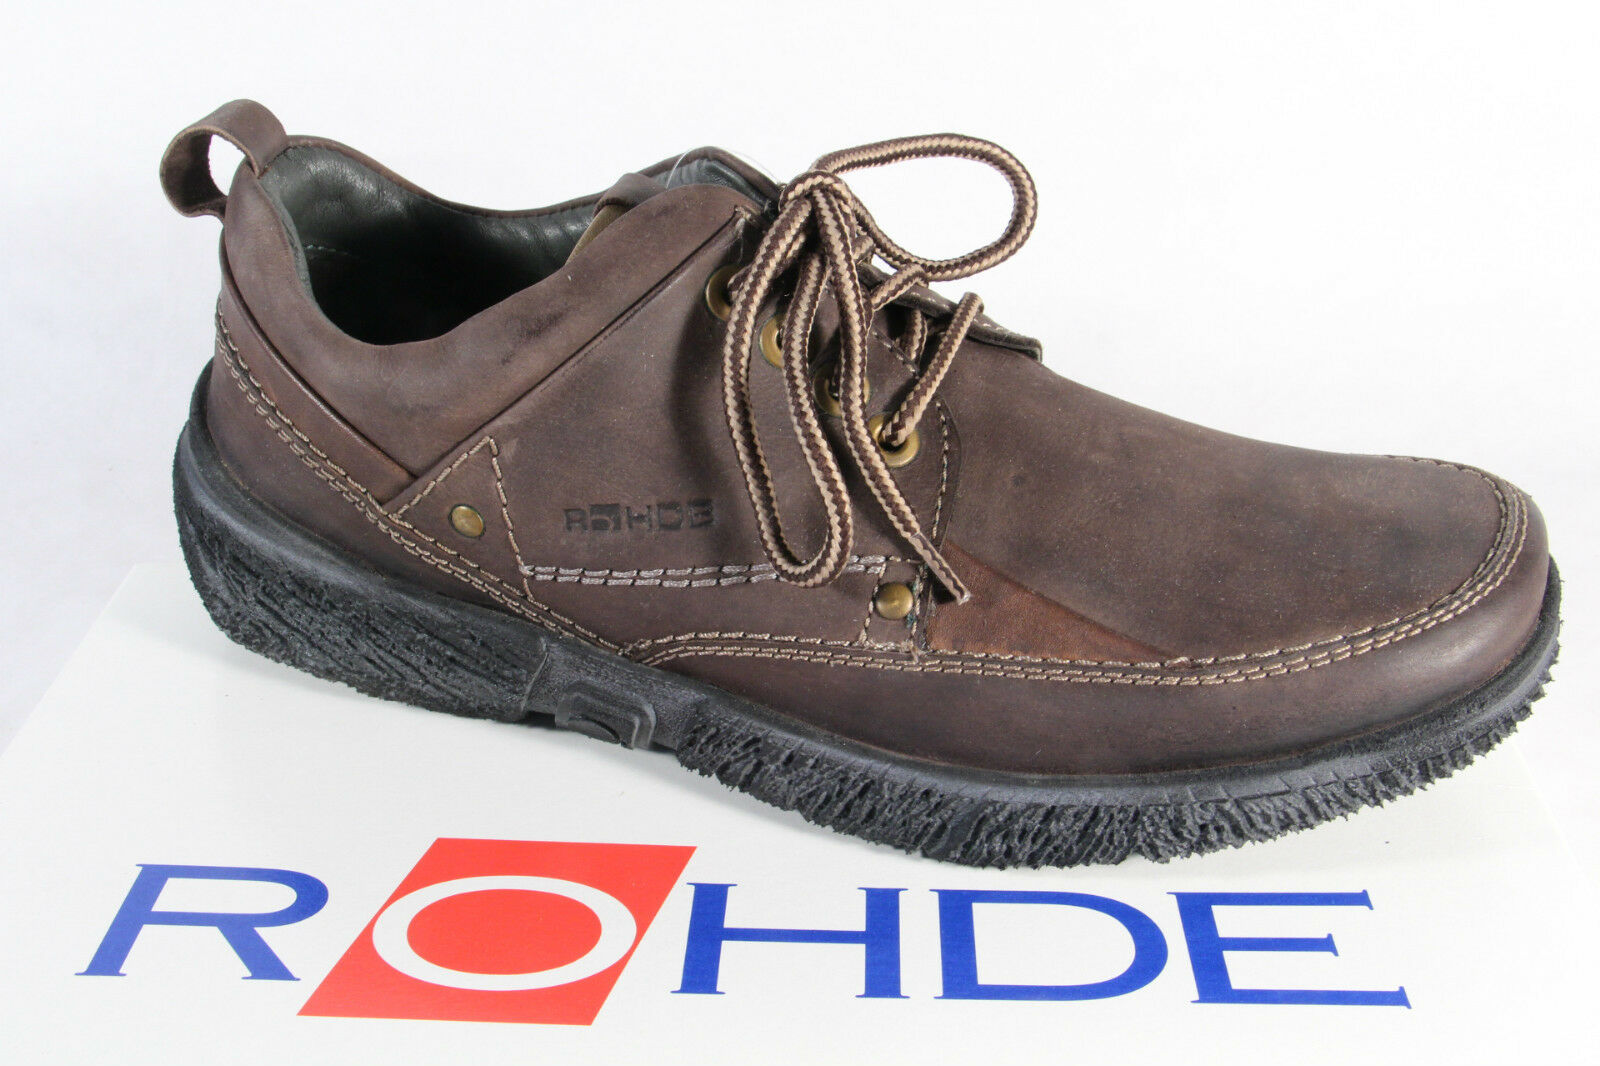 Rohde Lace-Up Loafers Sneaker Brown New